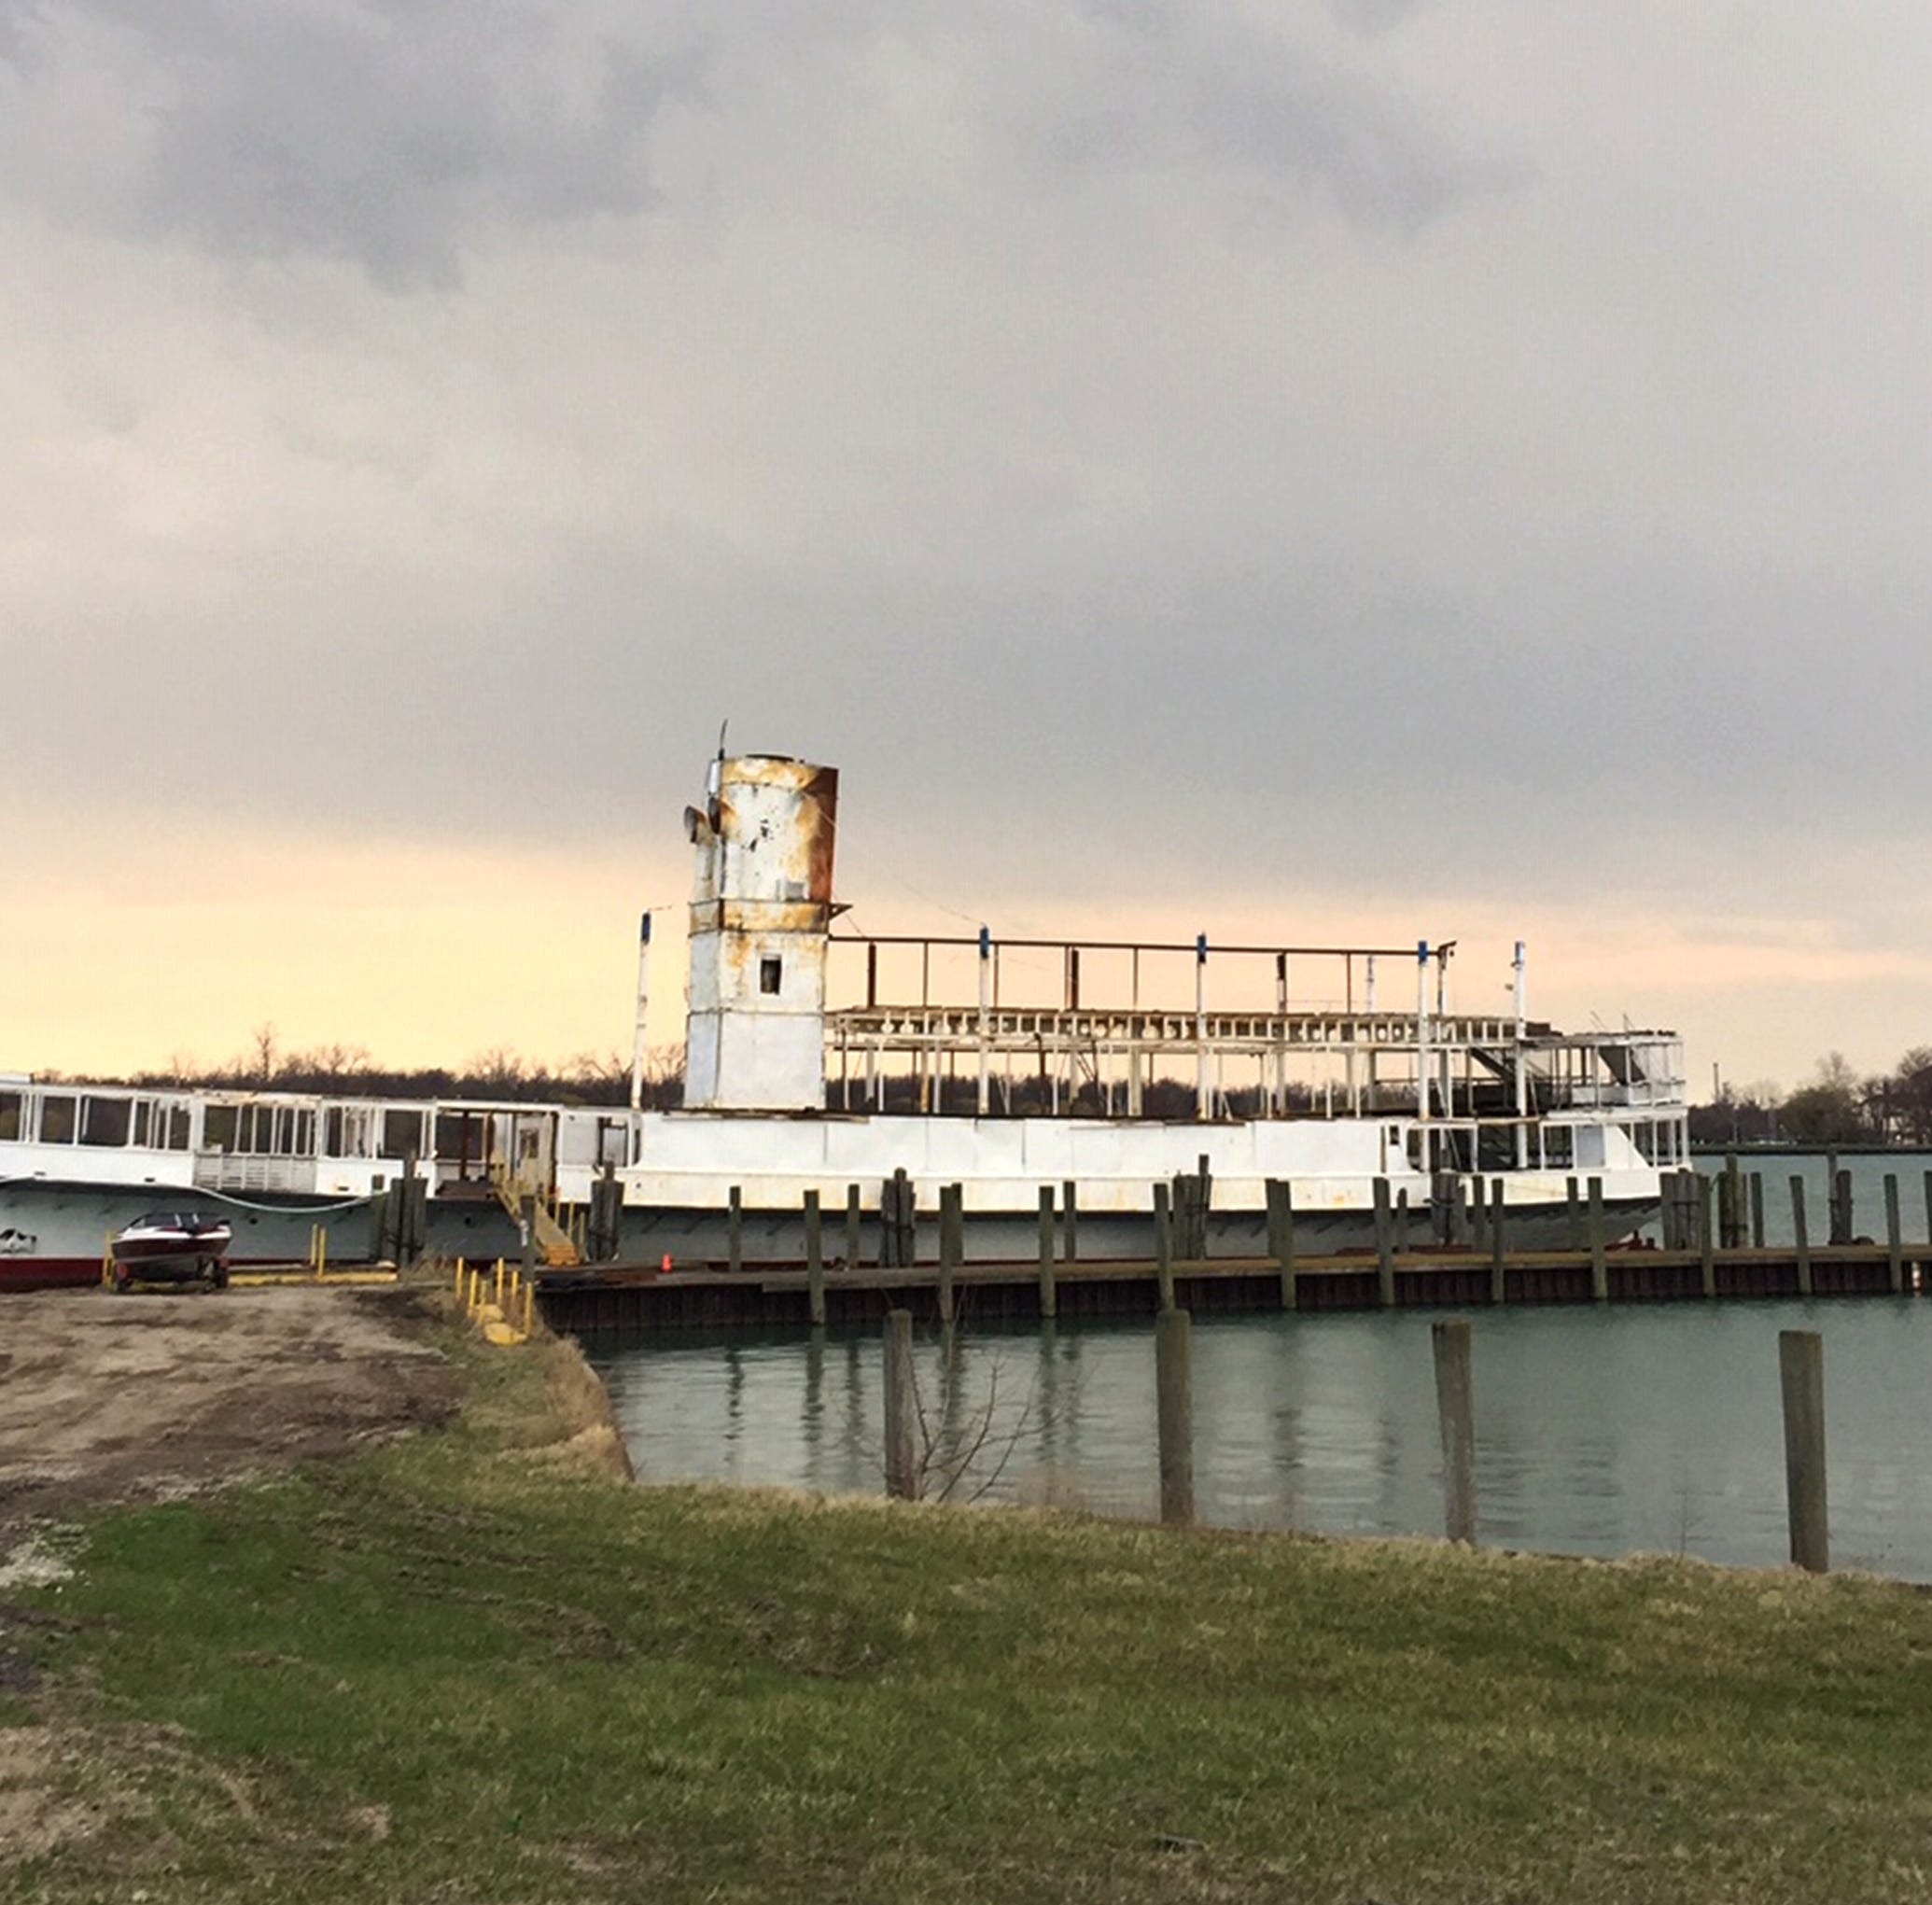 Small fire breaks out on SS Ste. Claire, former Boblo Boat